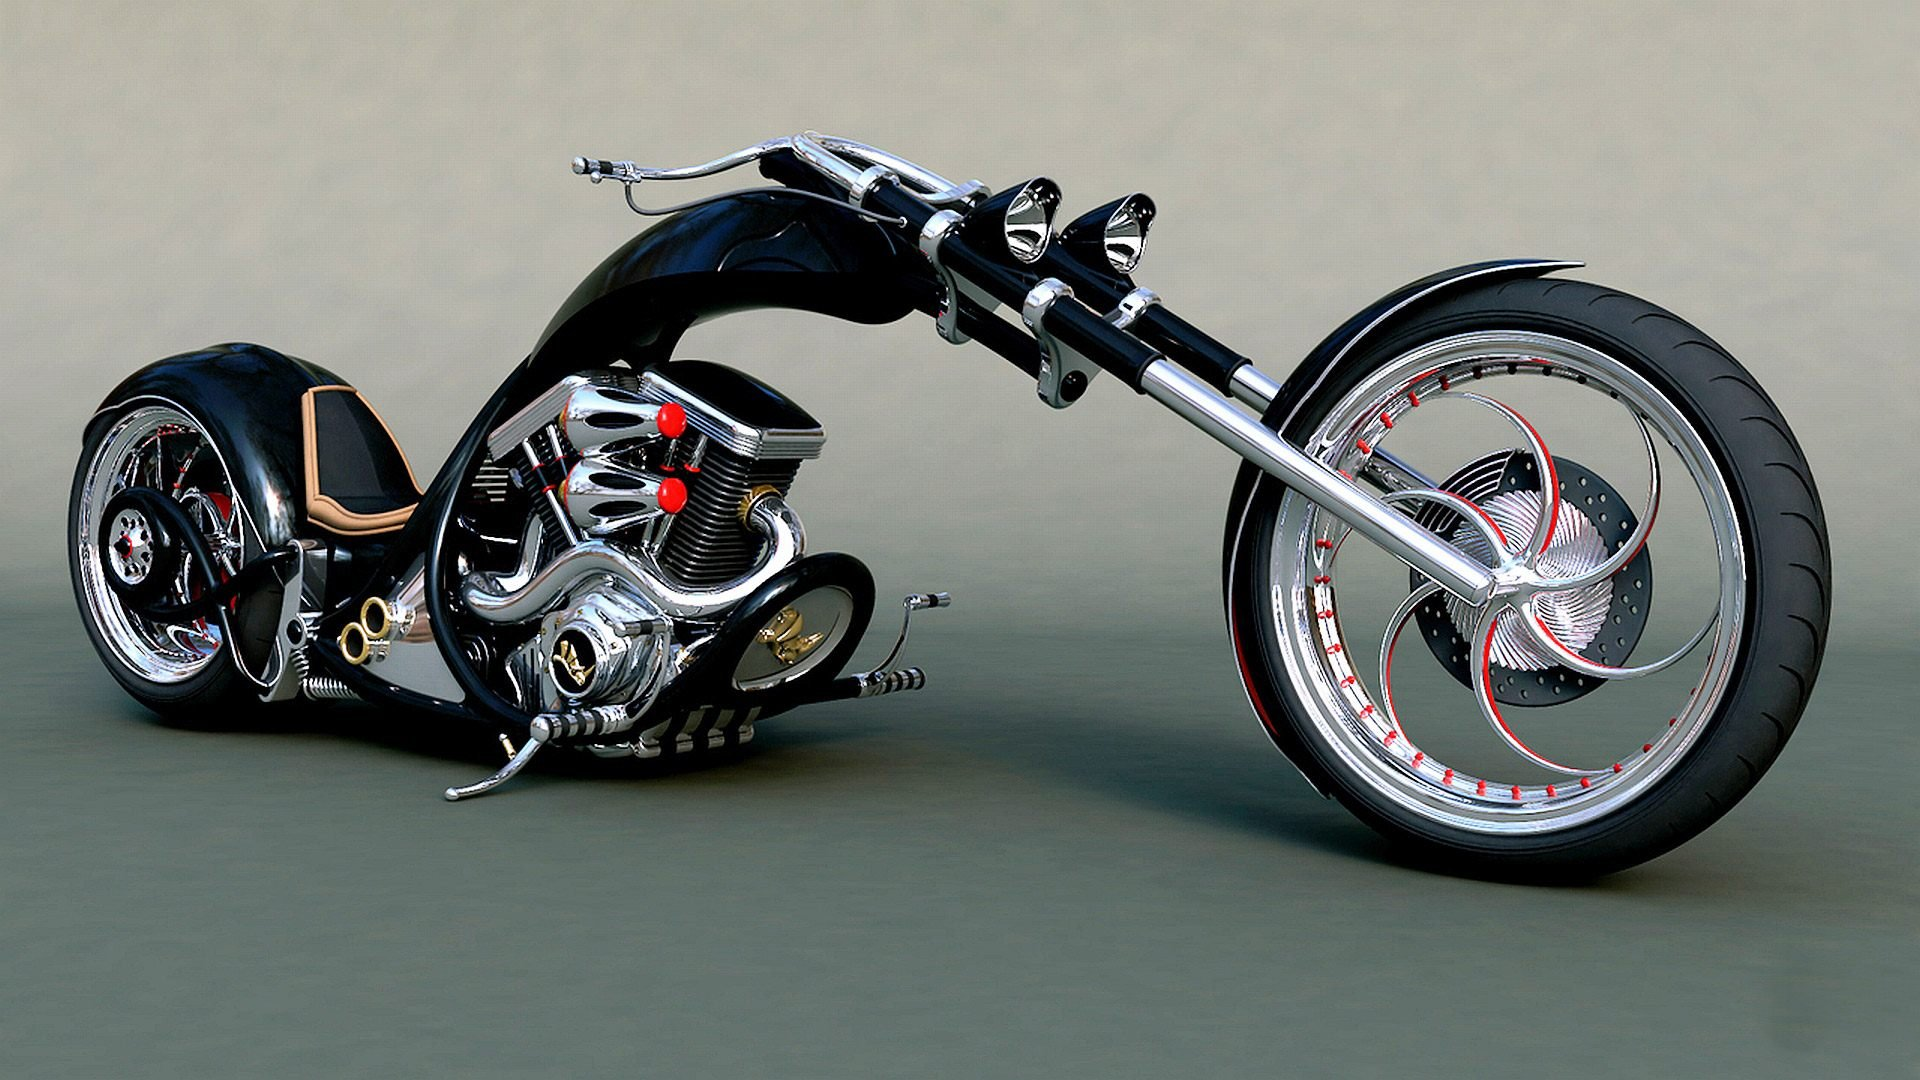 tuning motorbike motorcycle hot rod rods custom wallpaper background 1920x1080